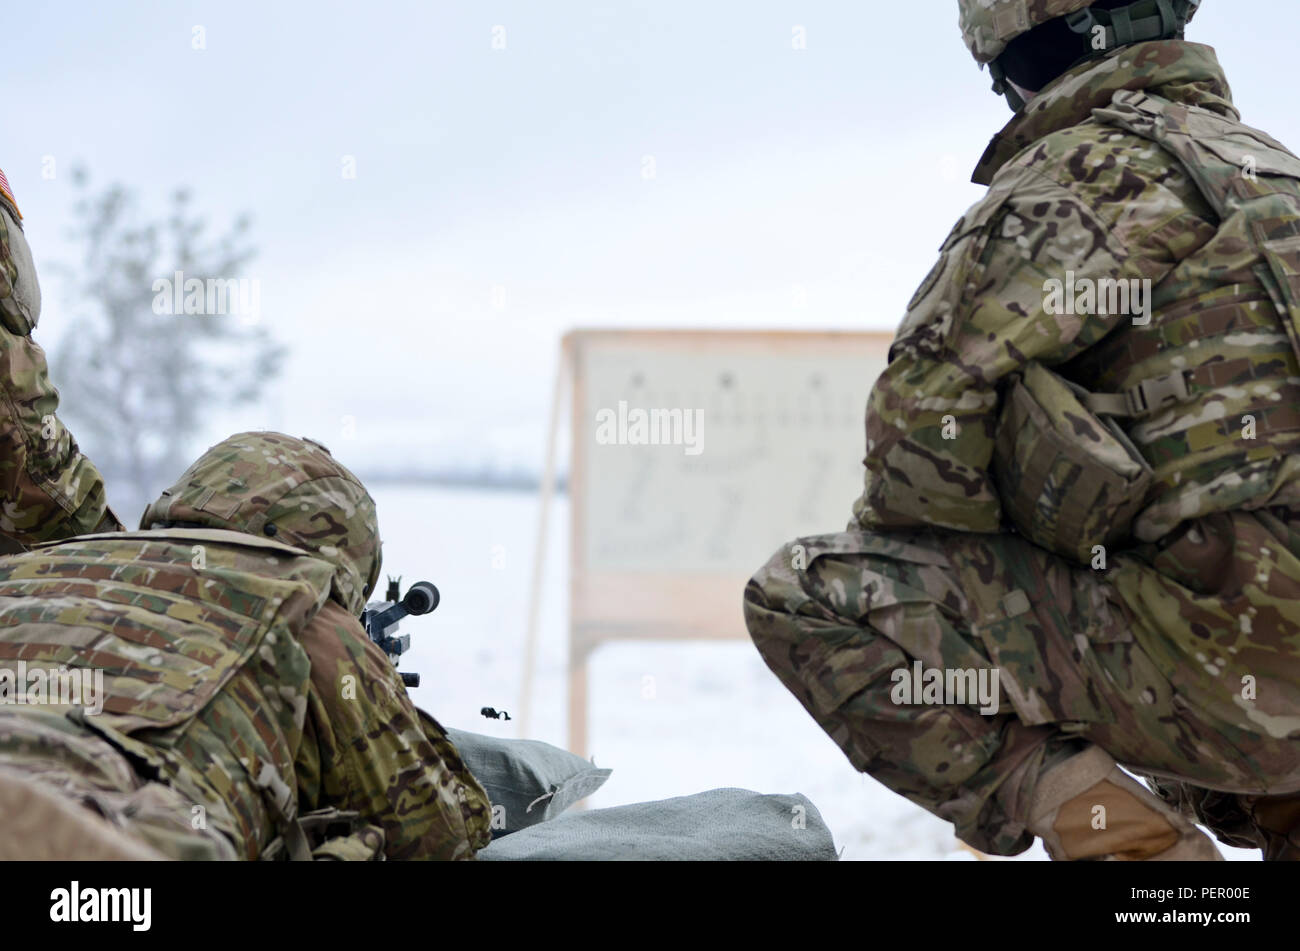 Staff Sgt. Andrew Nee (right), an engineer squad leader with 3rd Squadron, 2nd Cavalry Regiment, stationed at Vilseck, Germany, originally from Harlan, Iowa, coaches a Soldier at an M240 machine gun range during a training exercise at Adazi Training Area in Latvia, Jan. 25, 2016. (U.S. Army photo by Staff Sgt. Steven Colvin/Released) - Stock Image